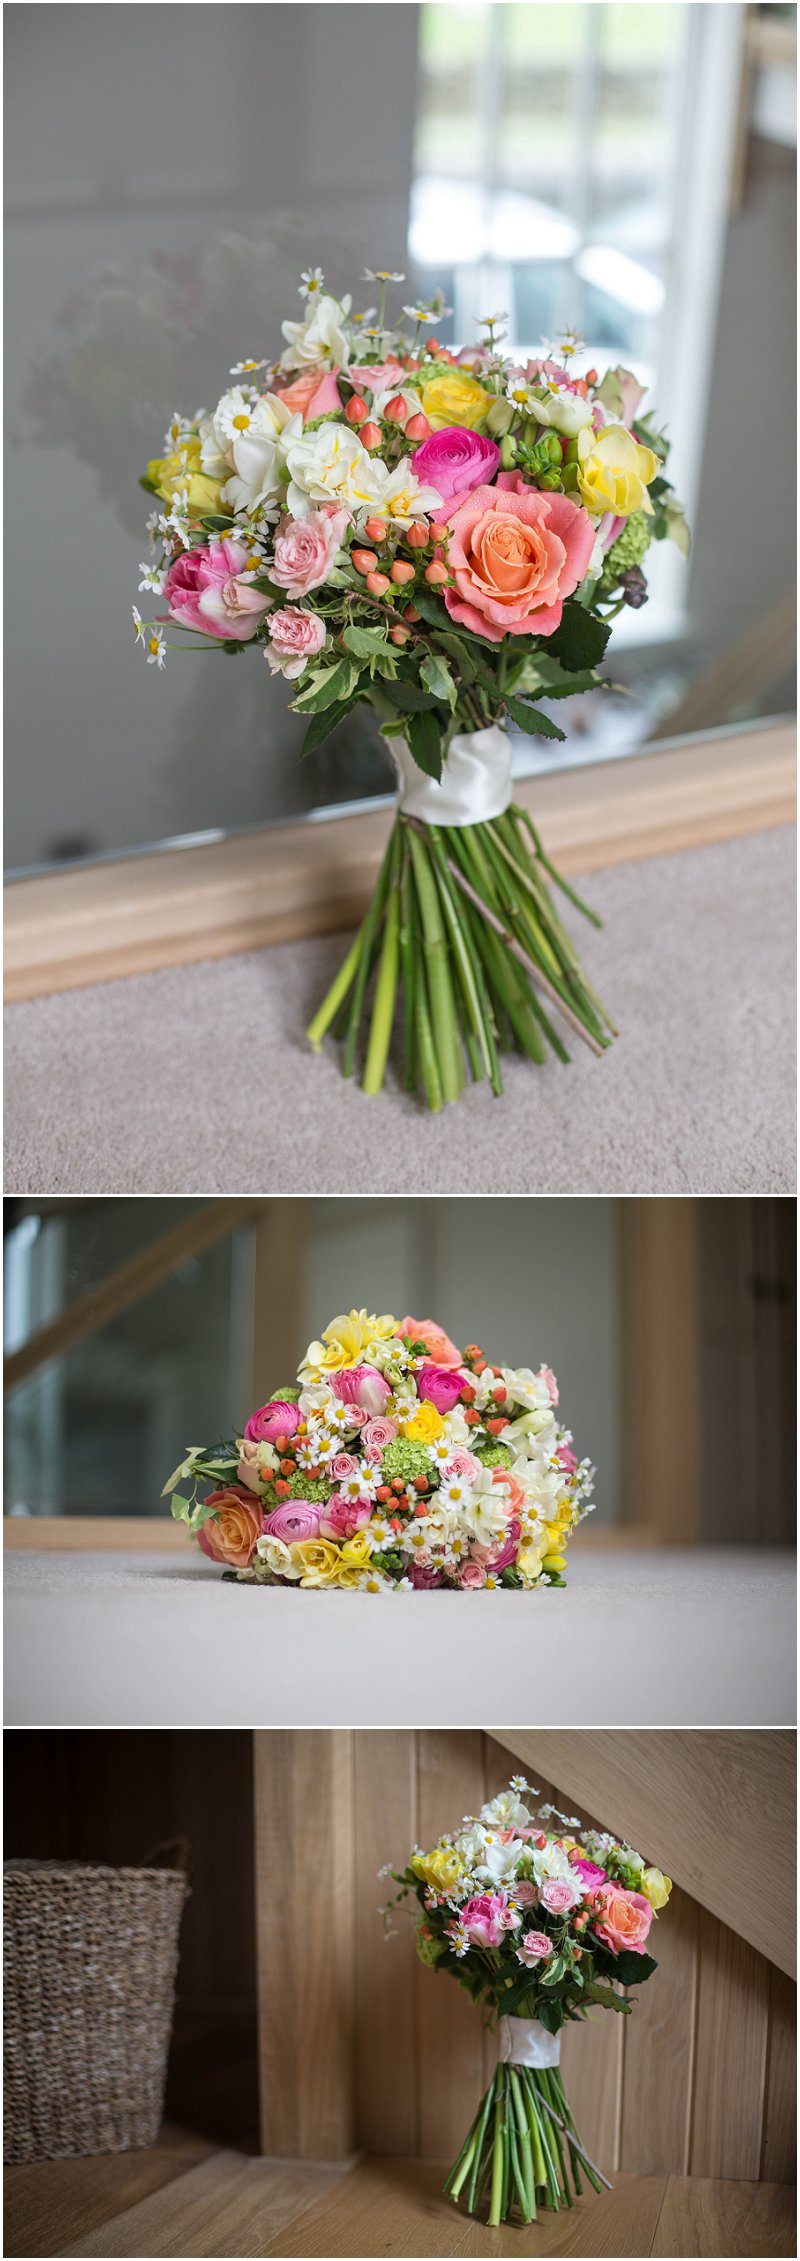 Sunning Wedding Bouquet Karli Harrison photography